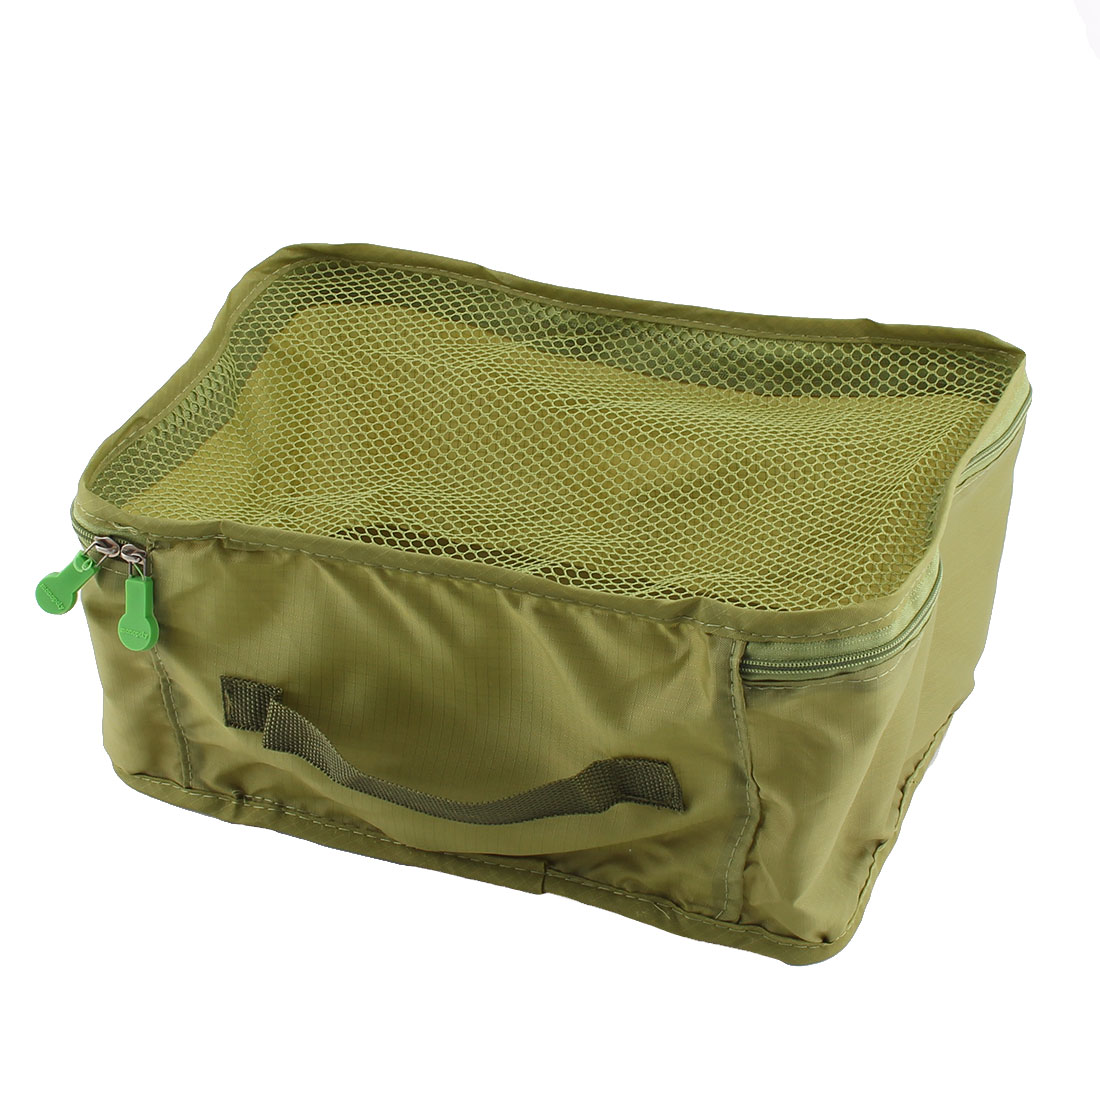 Travel Admission Foldable Zipper Closure Package Pouch Mesh Bag Frost Green - image 5 de 5